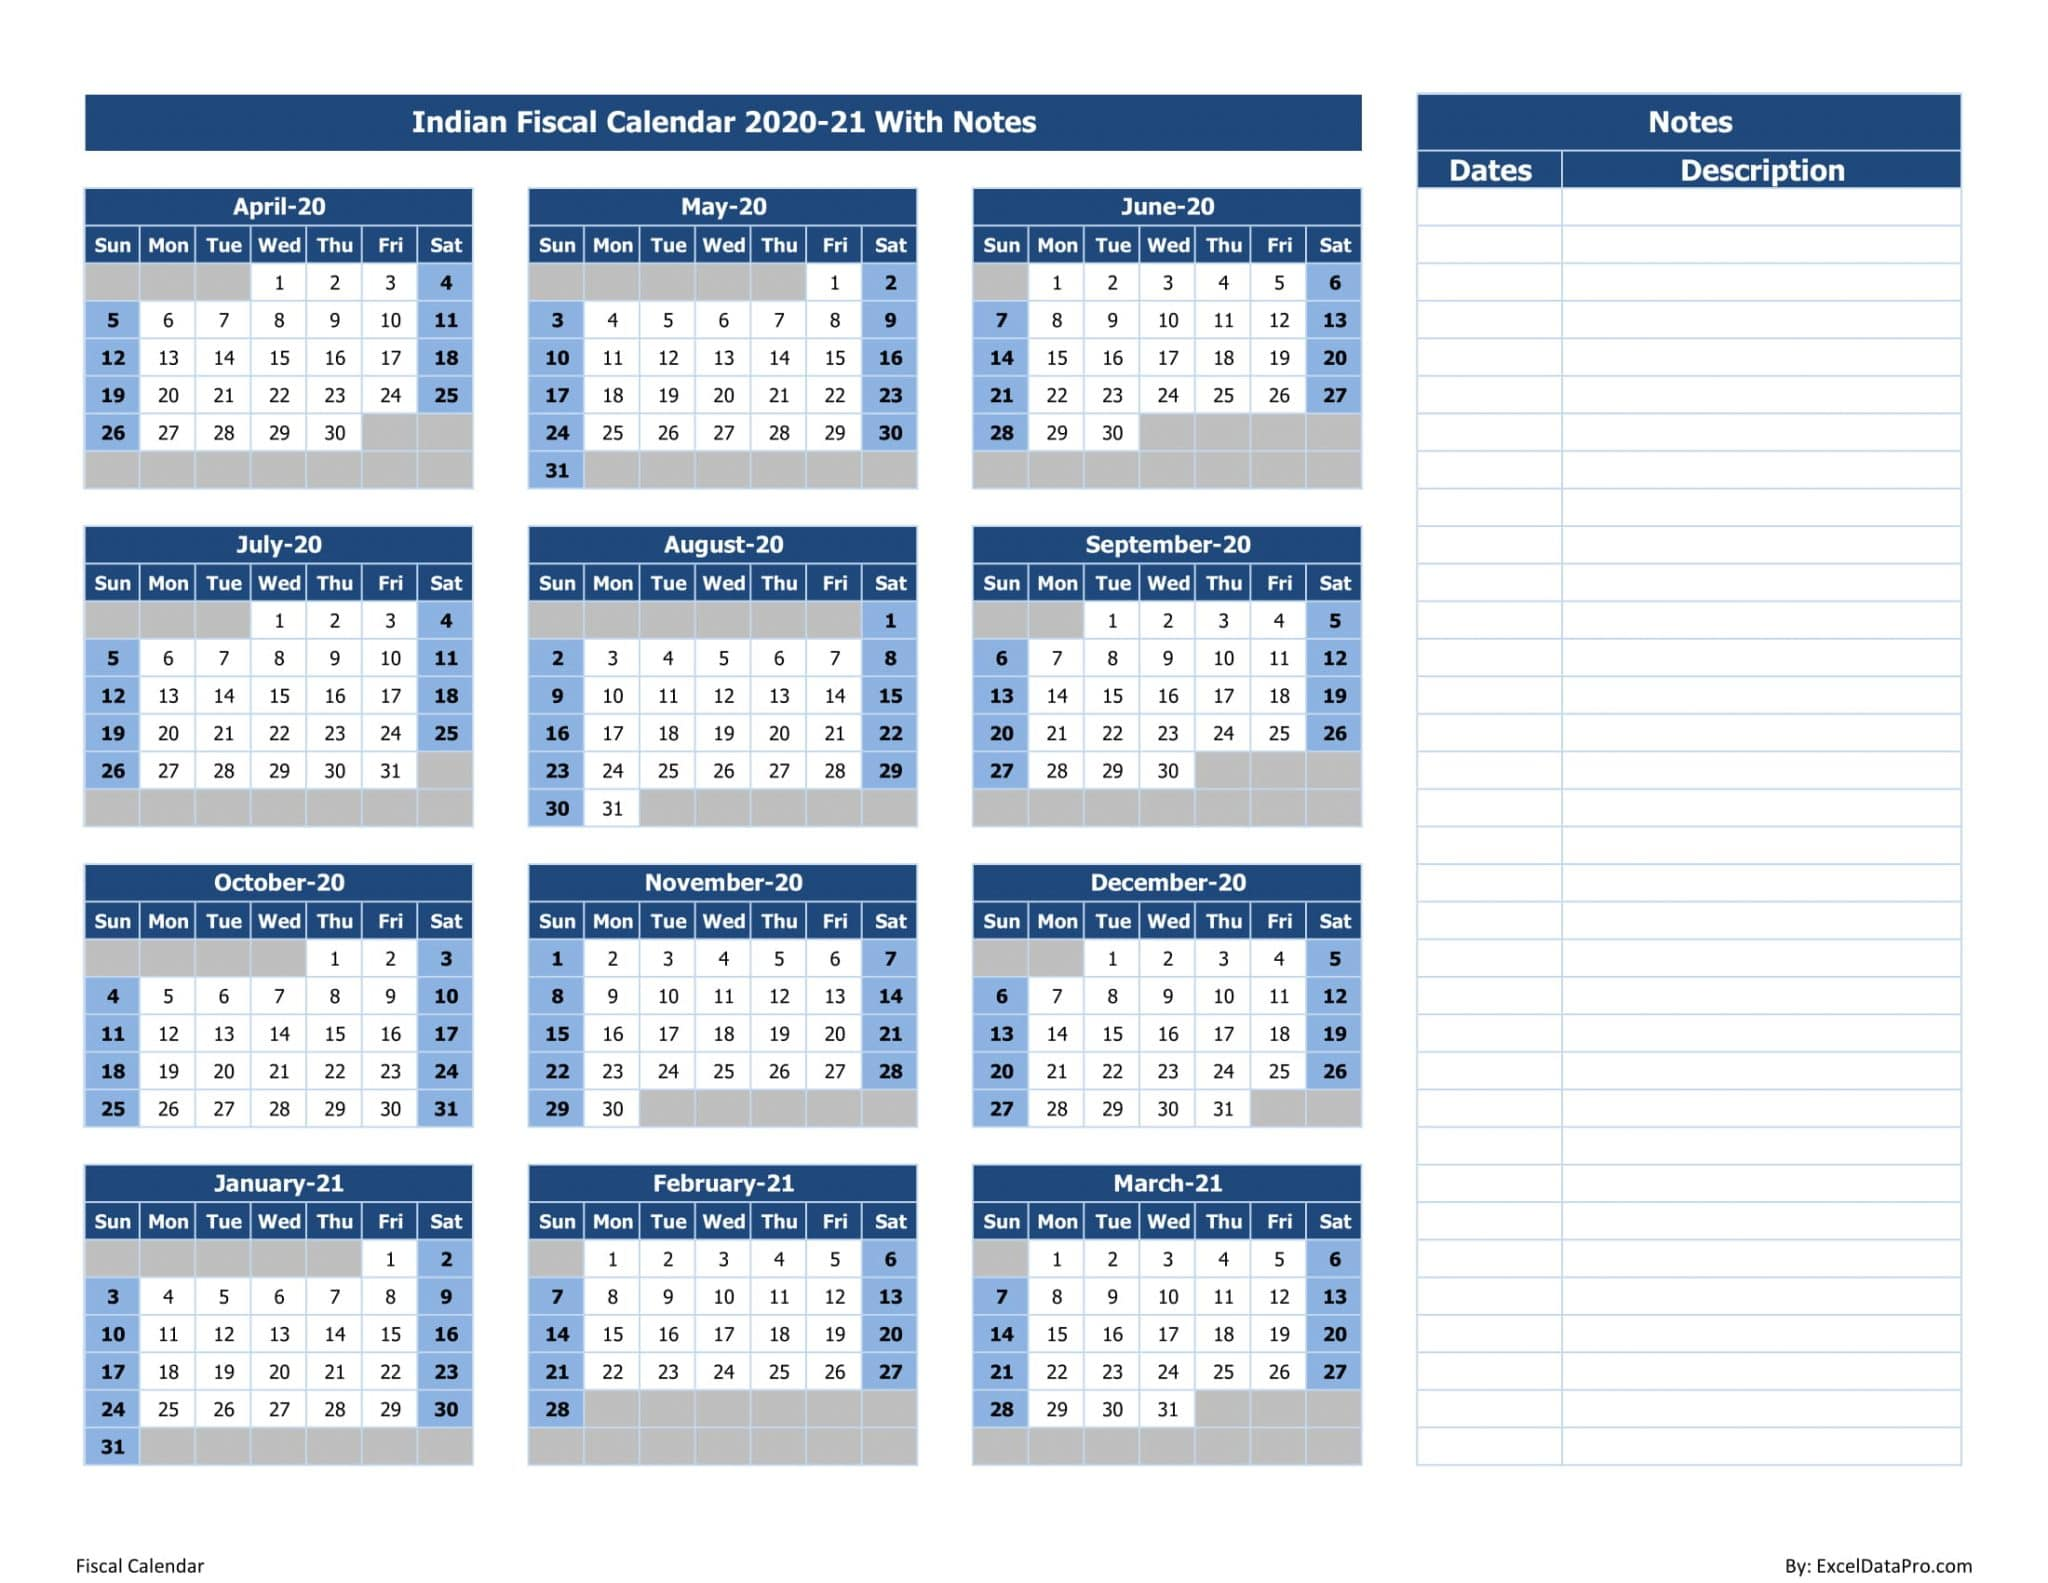 Indian Fiscal Calendar 2020-21 With Notes